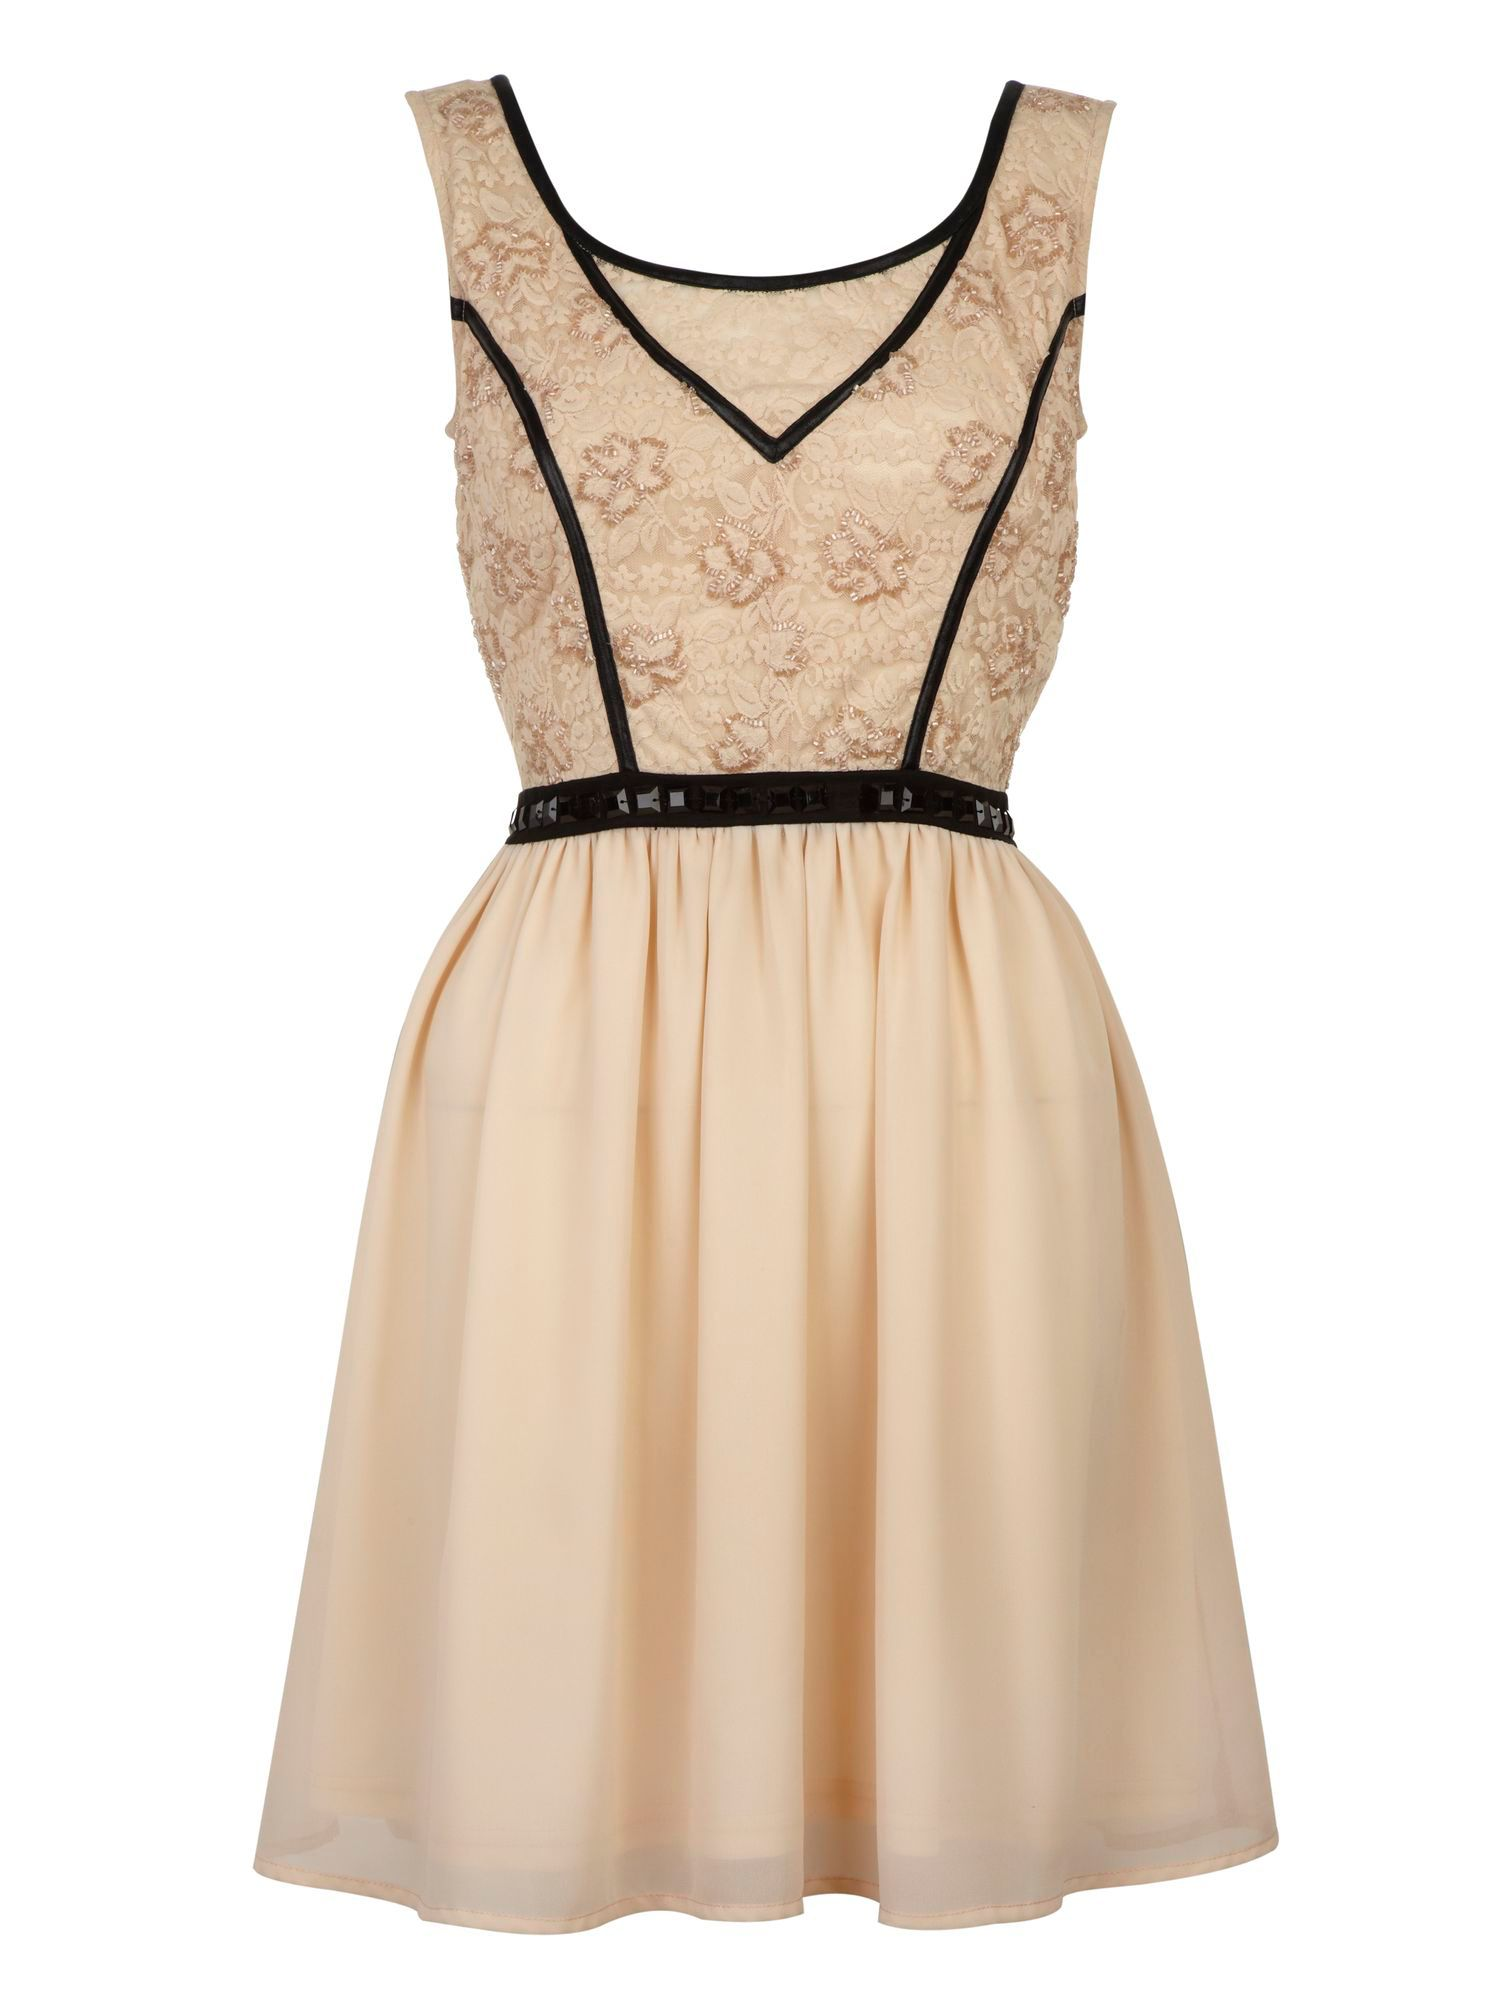 Lace detail dress